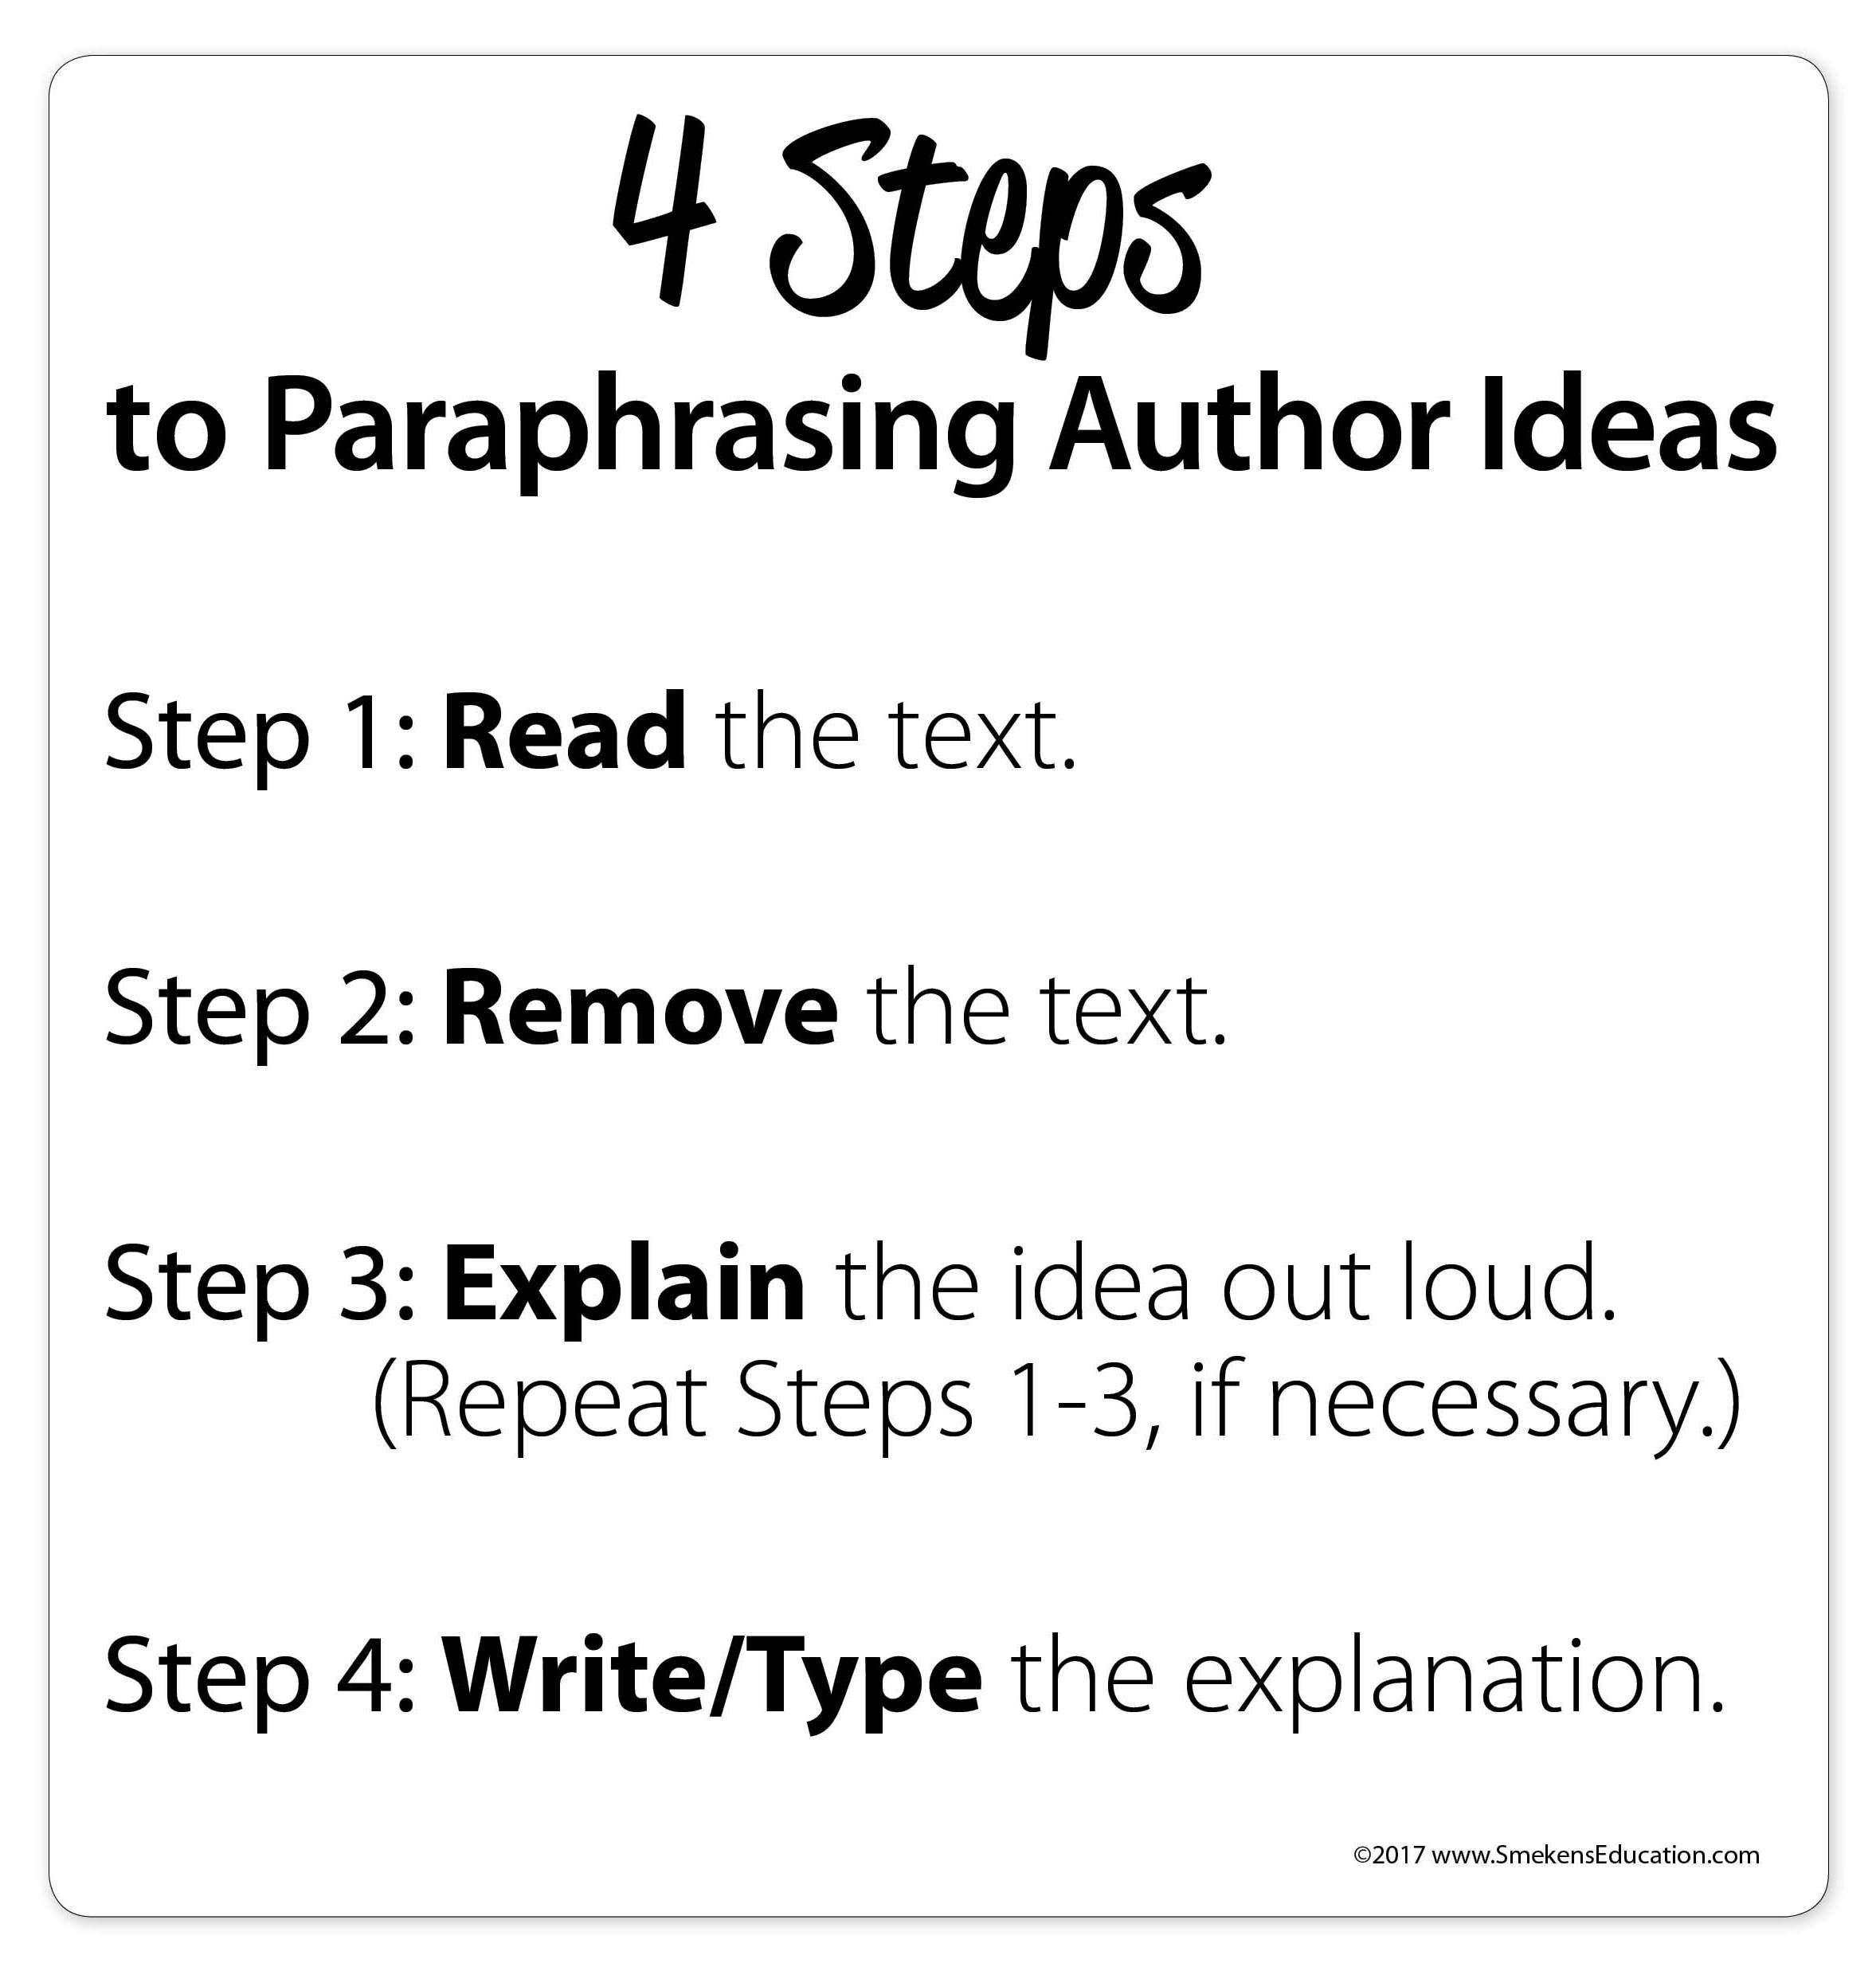 Paraphrase Author Ideas